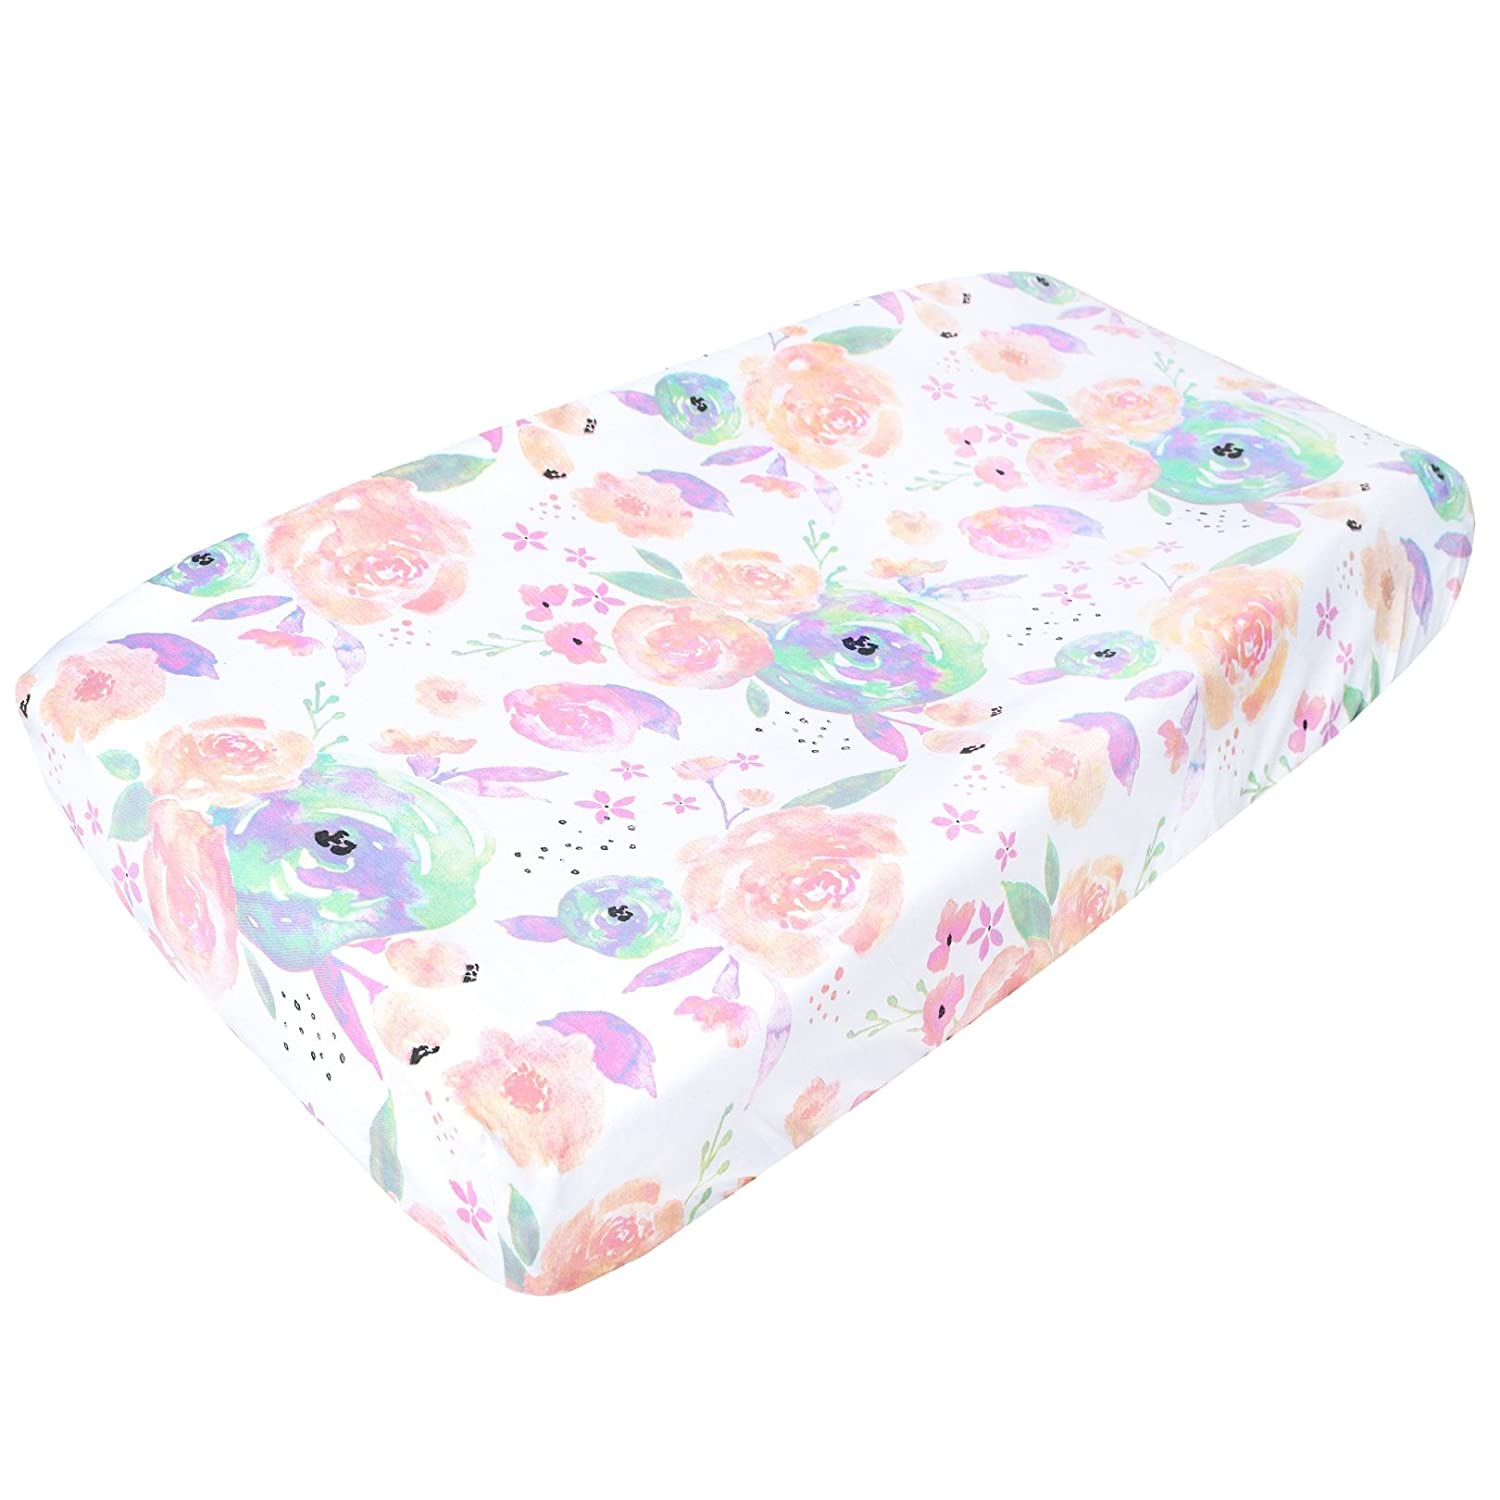 Premium Cotton Diaper Changing Pad Cover Bloom Floral by Copper Pearl